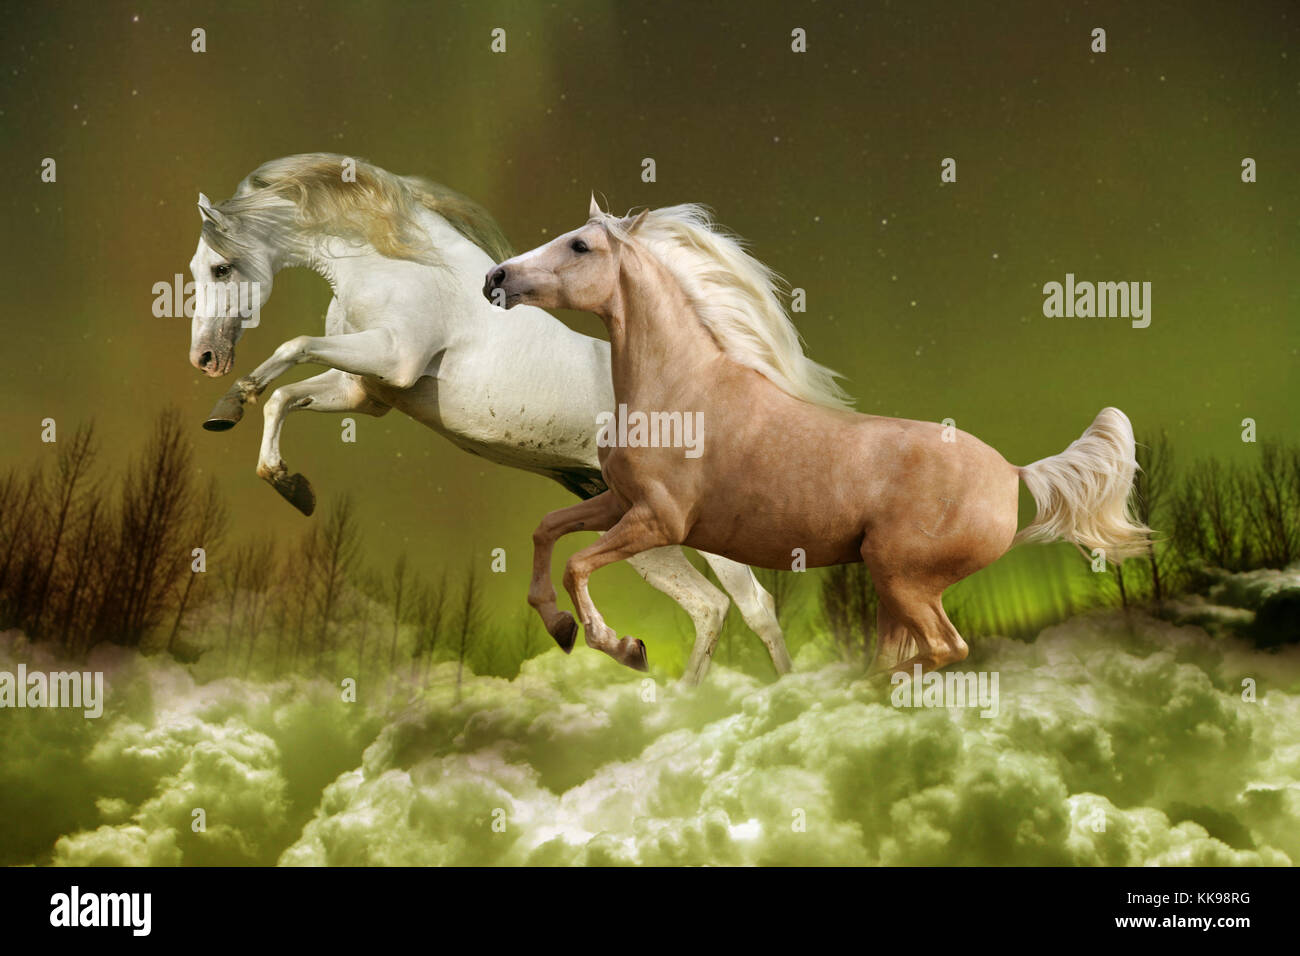 Magical Horses High Resolution Stock Photography And Images Alamy